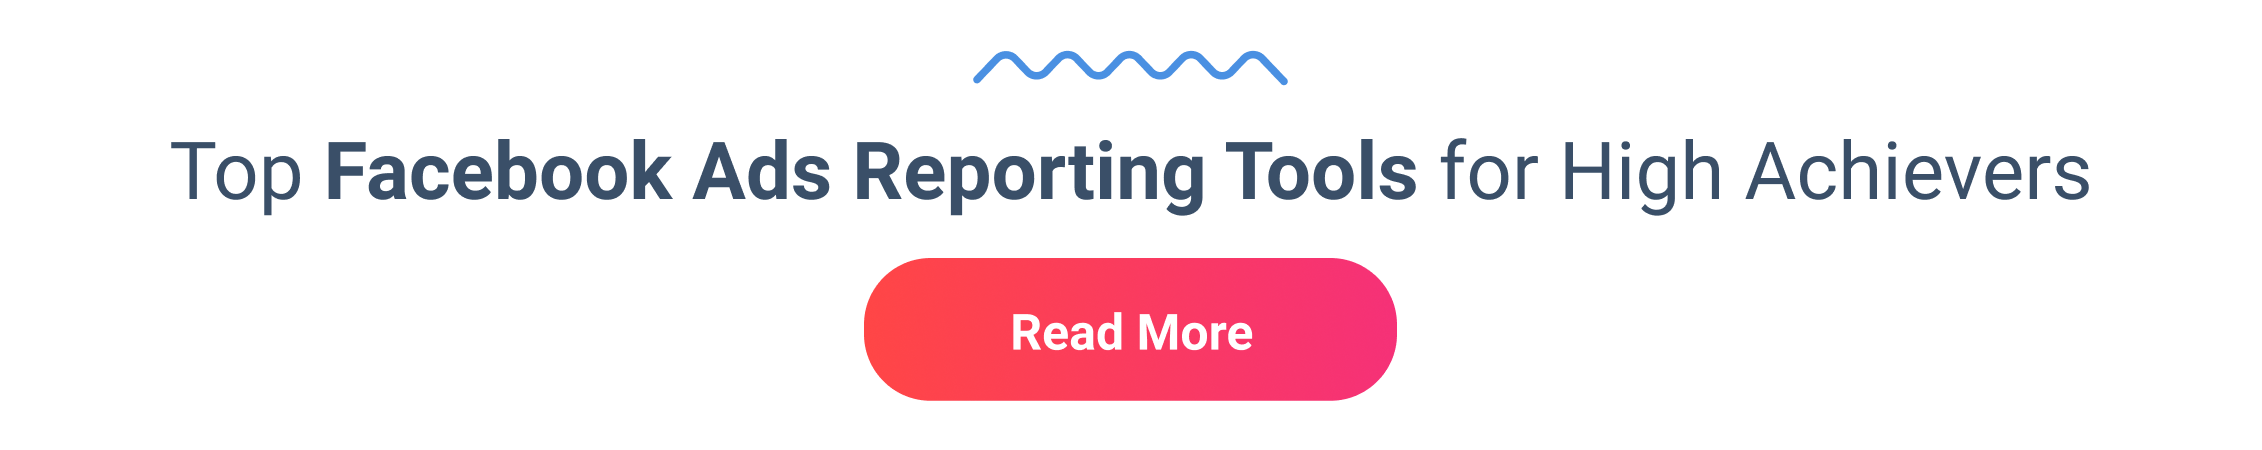 Facebook Ads reporting tools